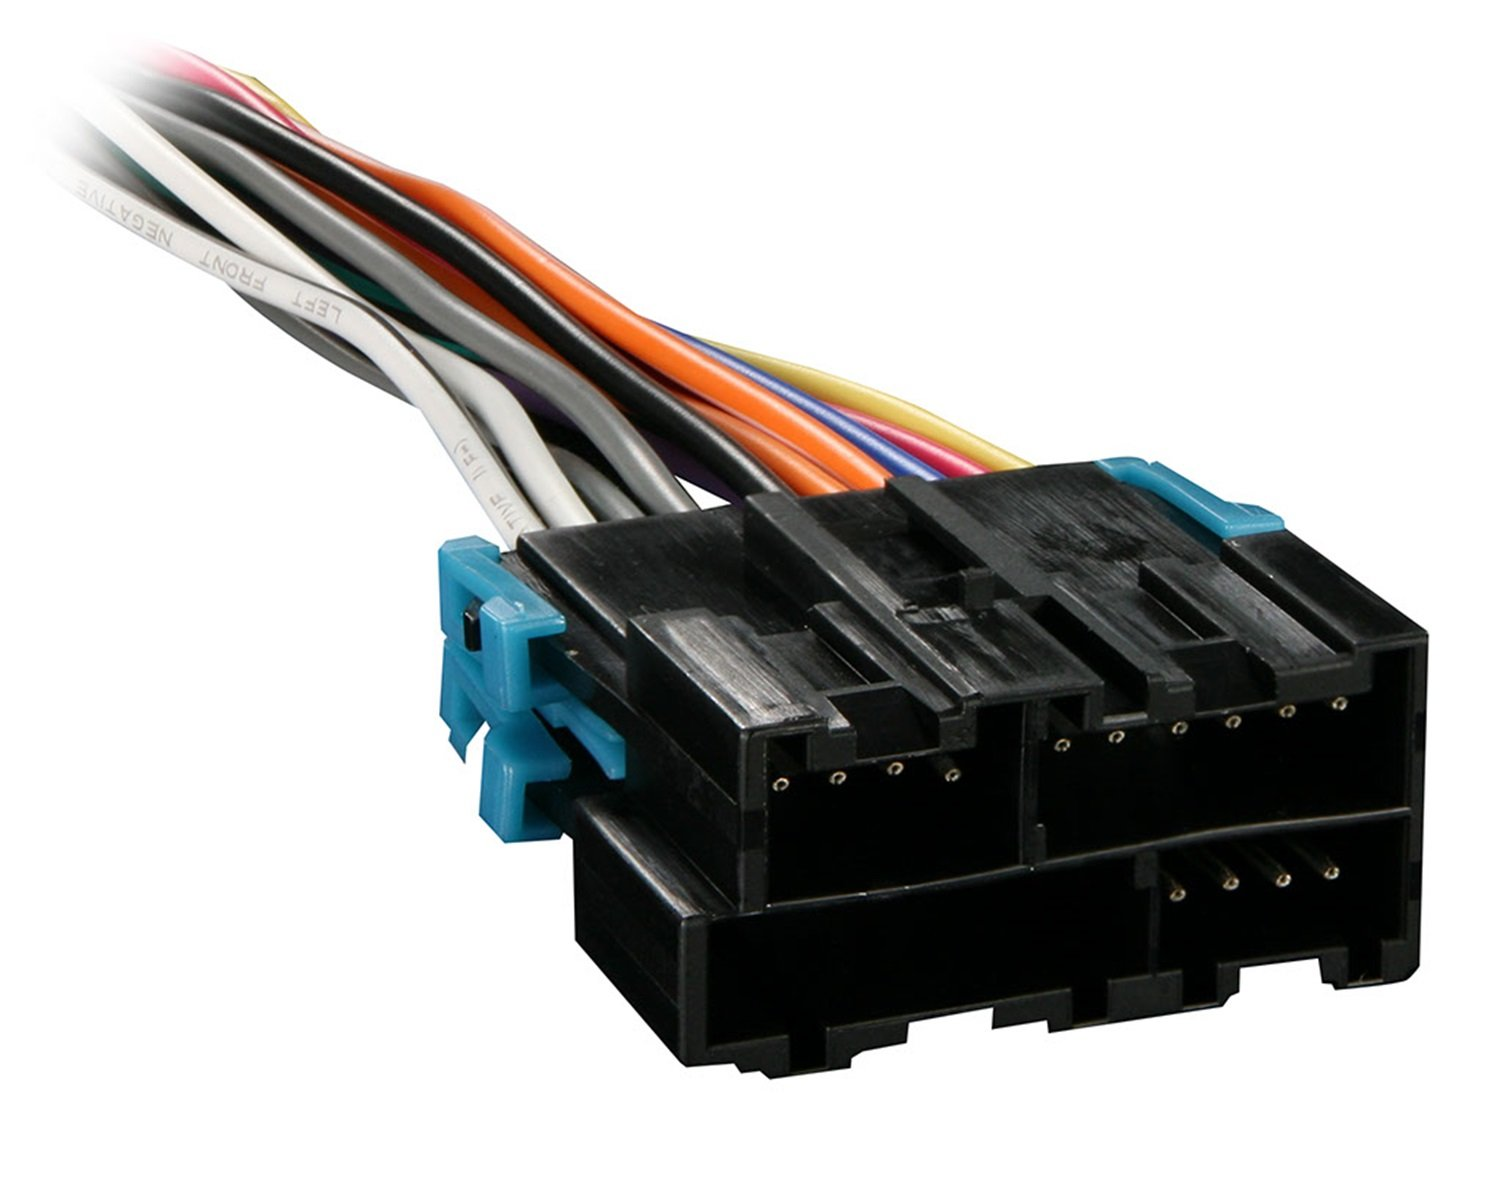 61 CwjZt1hL._SL1500_ radio wiring harnesses amazon com stereo wiring harness for 2004 impala at readyjetset.co